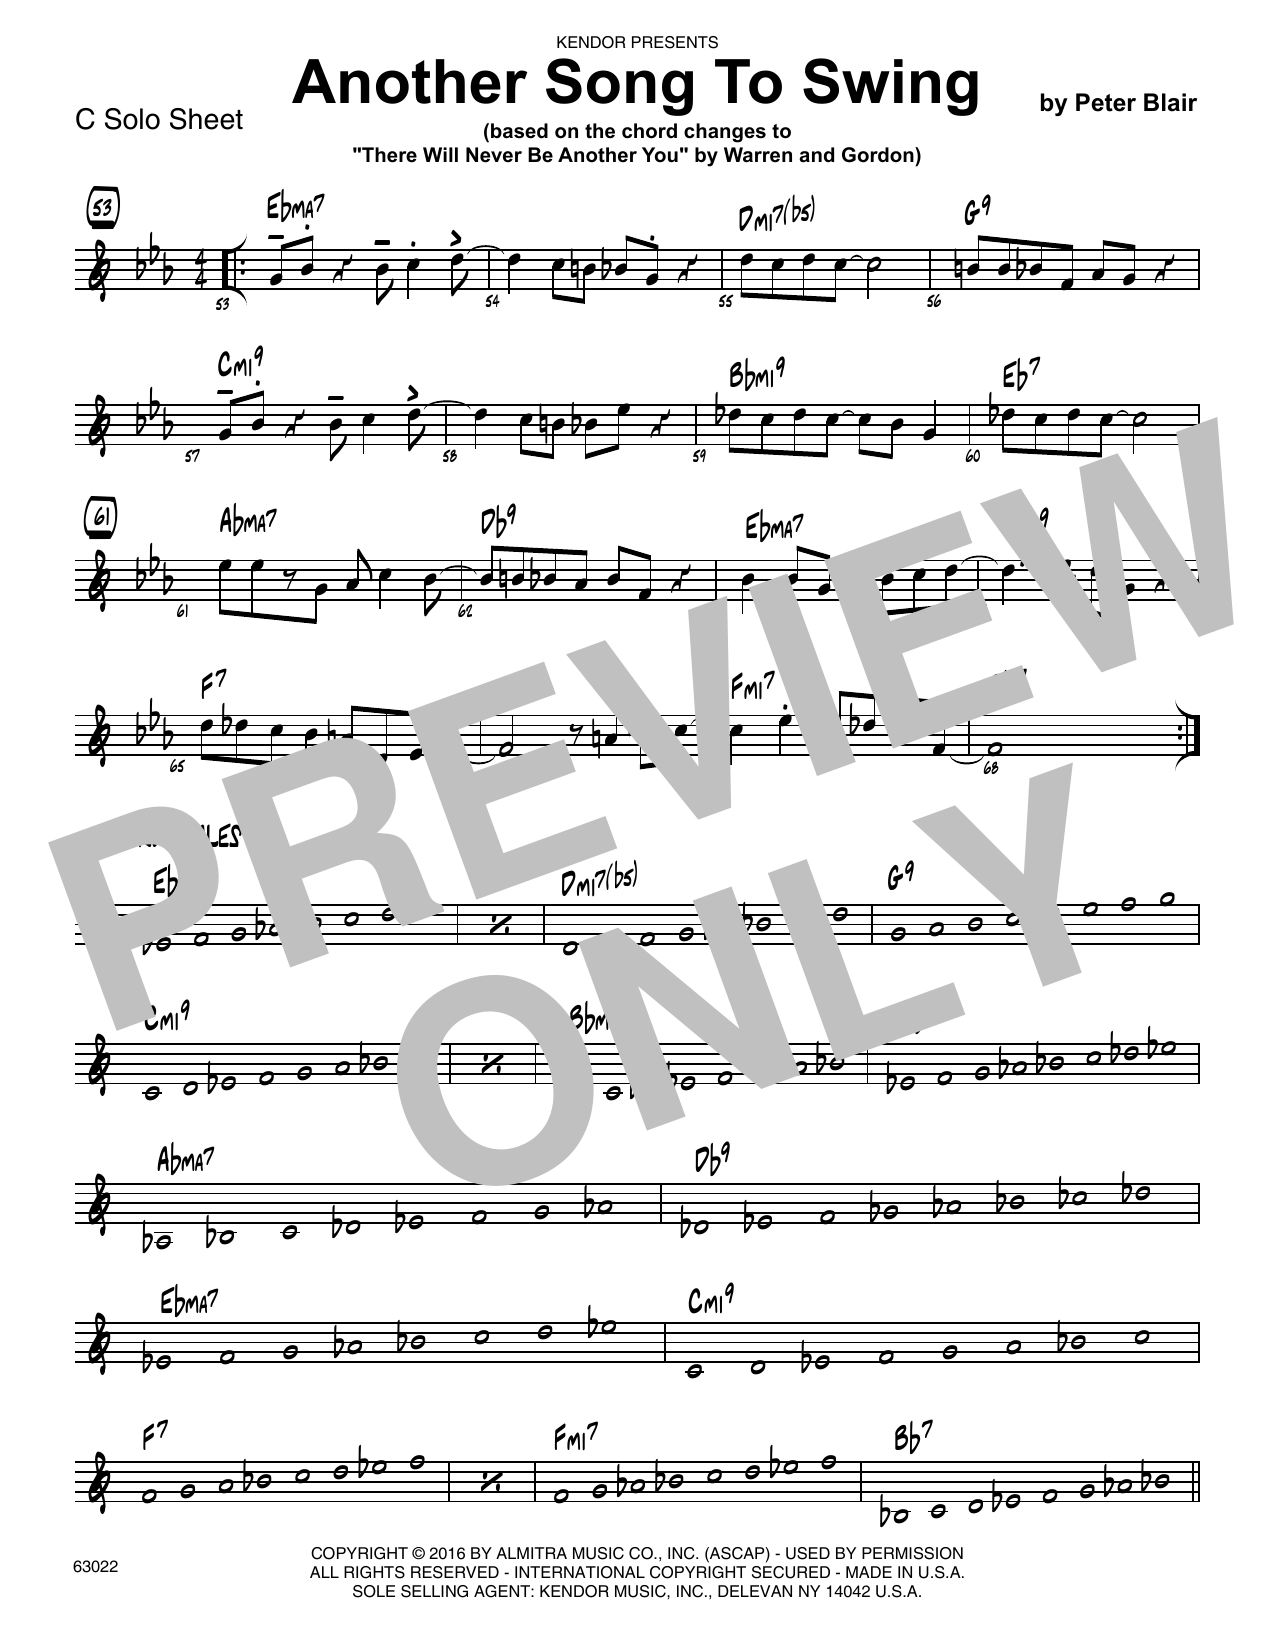 Another Song To Swing - C Solo Sheet Sheet Music